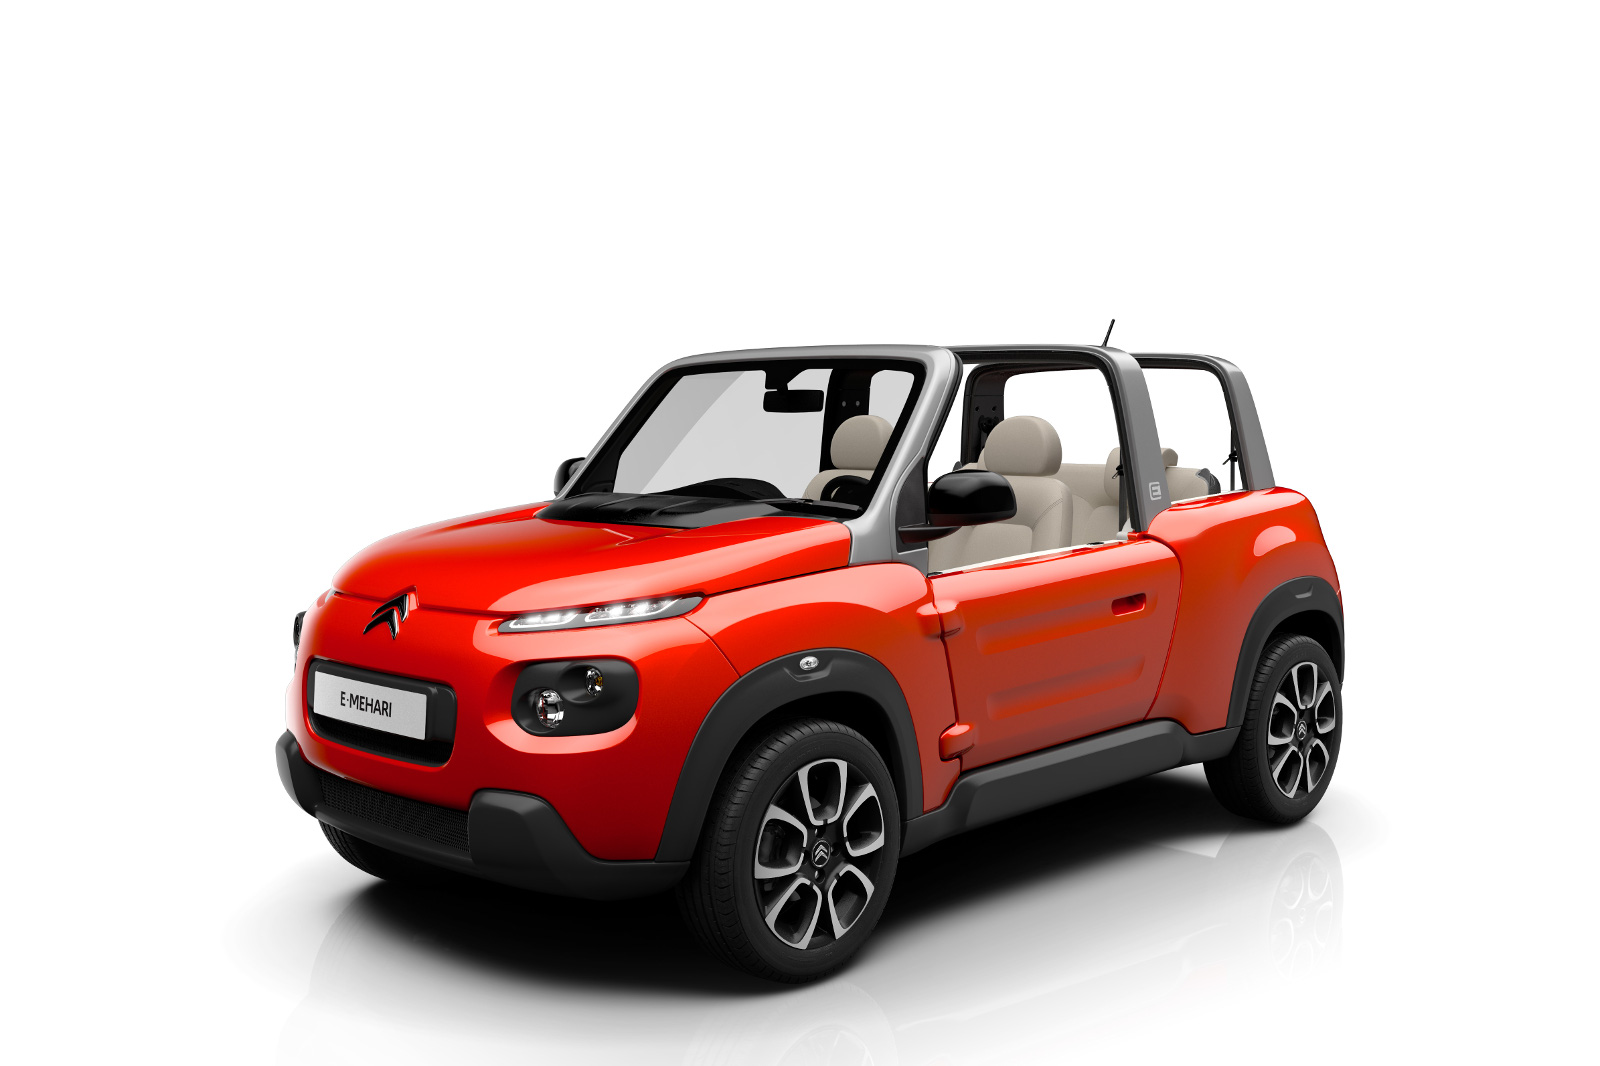 citroen e mehari revealed as production model speed carz. Black Bedroom Furniture Sets. Home Design Ideas